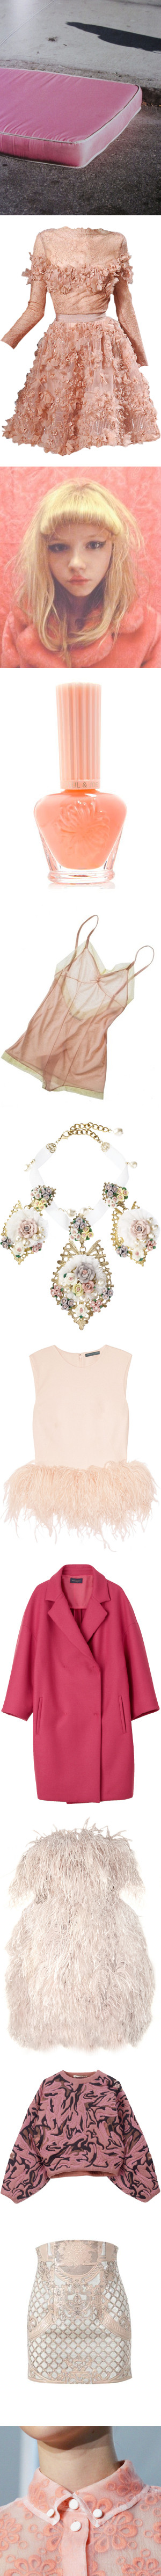 """""""Candyfloss"""" by headshapes ❤ liked on Polyvore"""